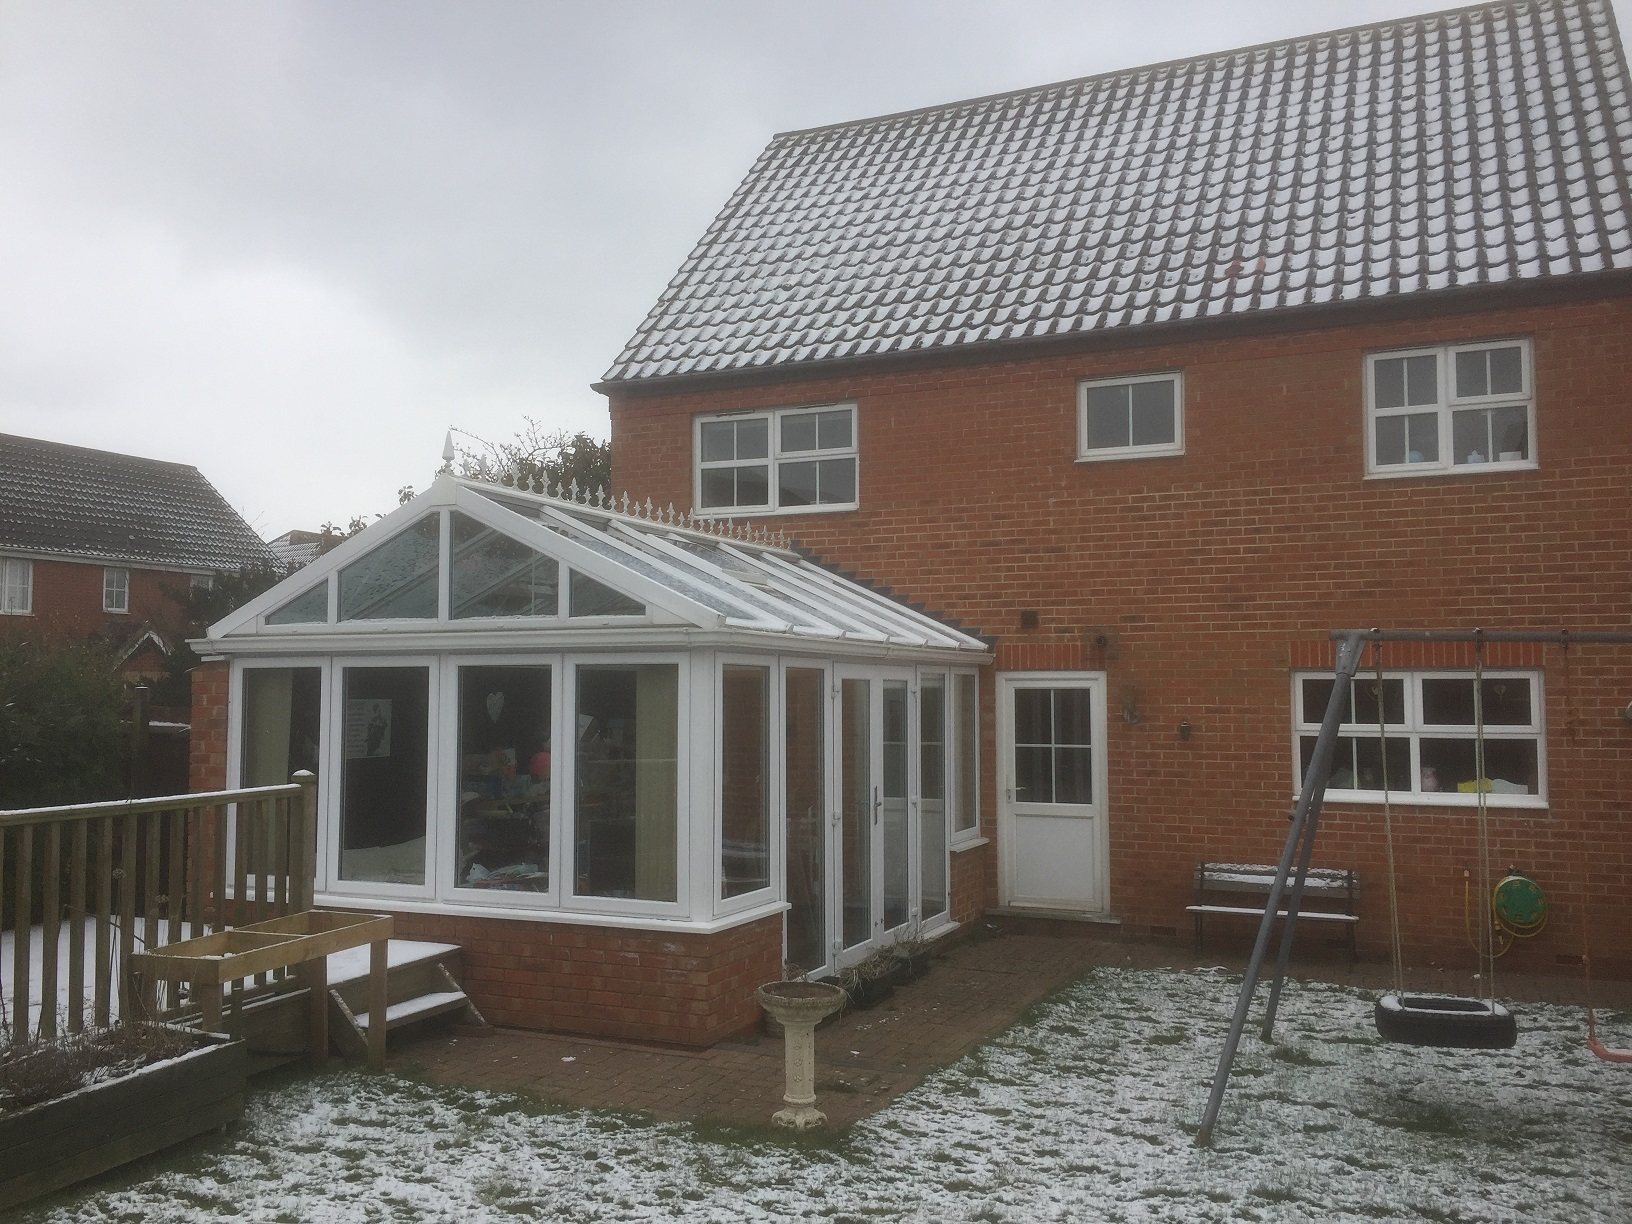 Conservatory before having a conservatory conversion with a Guardian Warm Roof